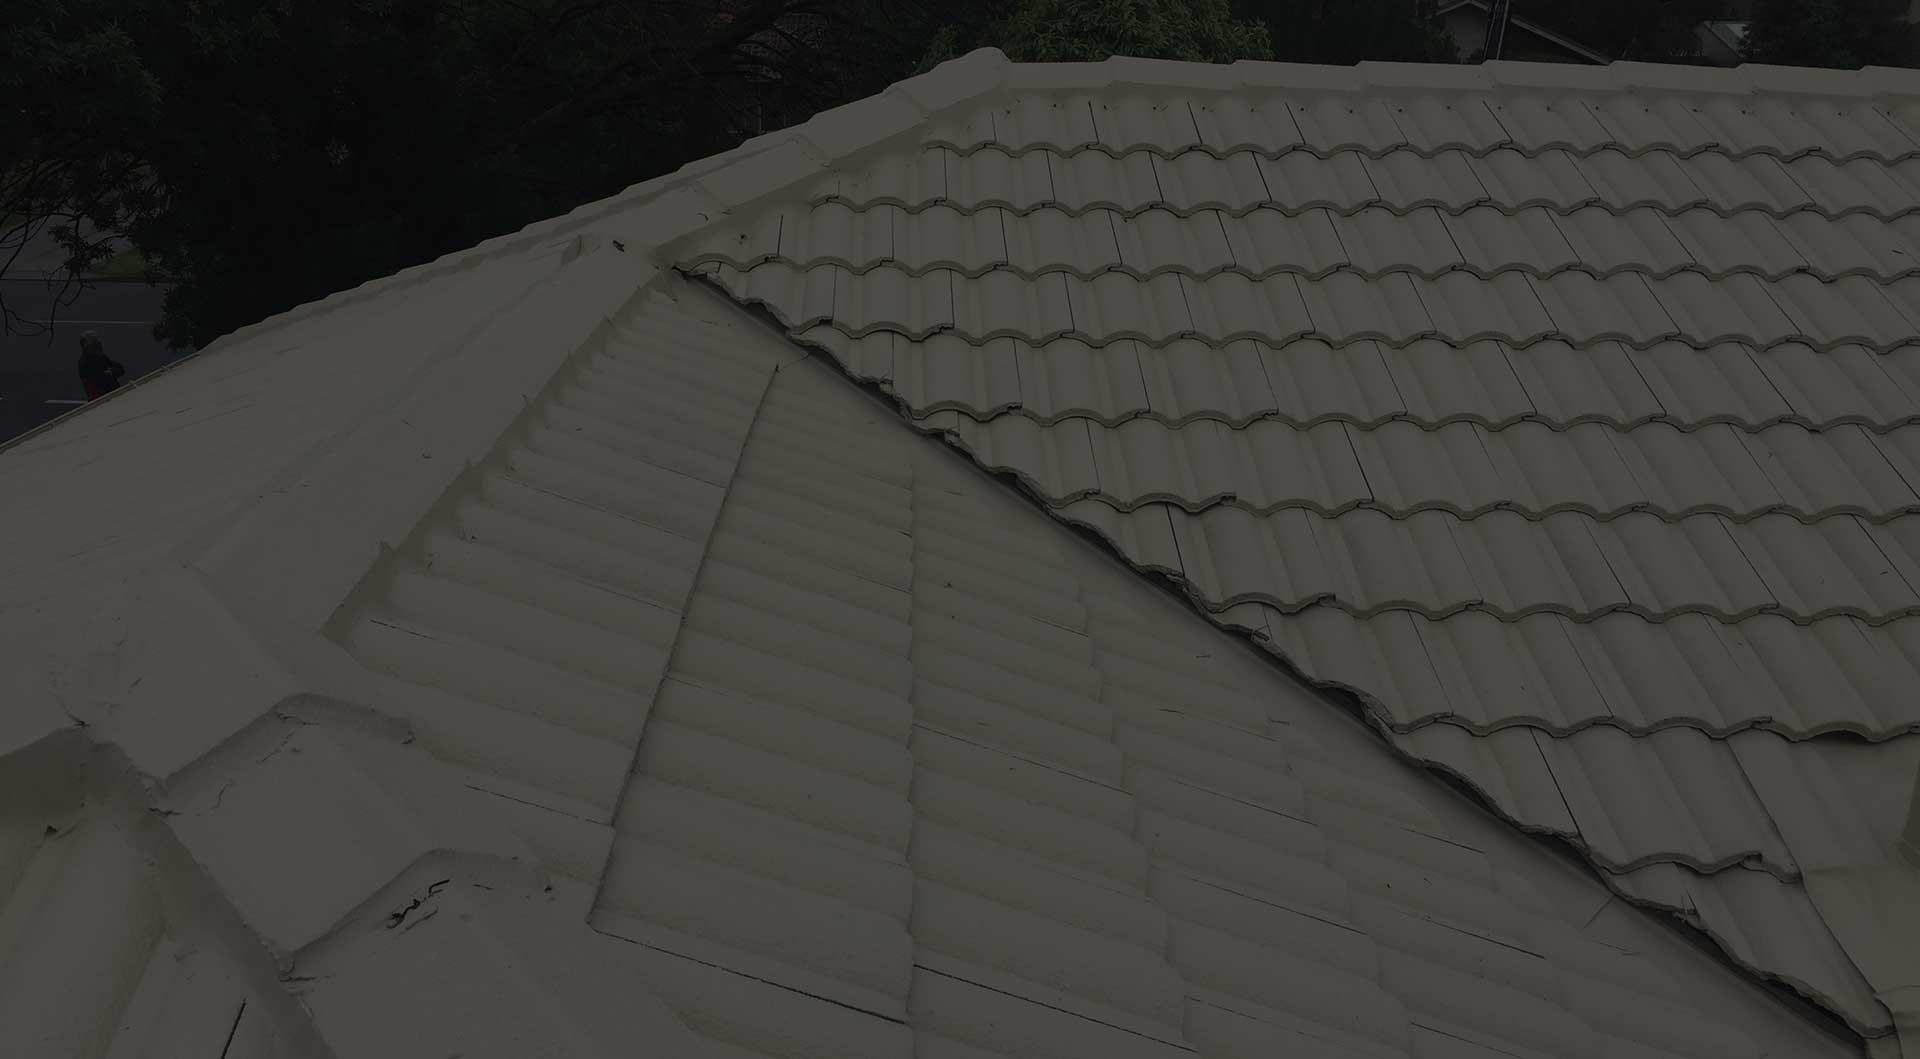 SIMPLY THE BEST IN ROOFING